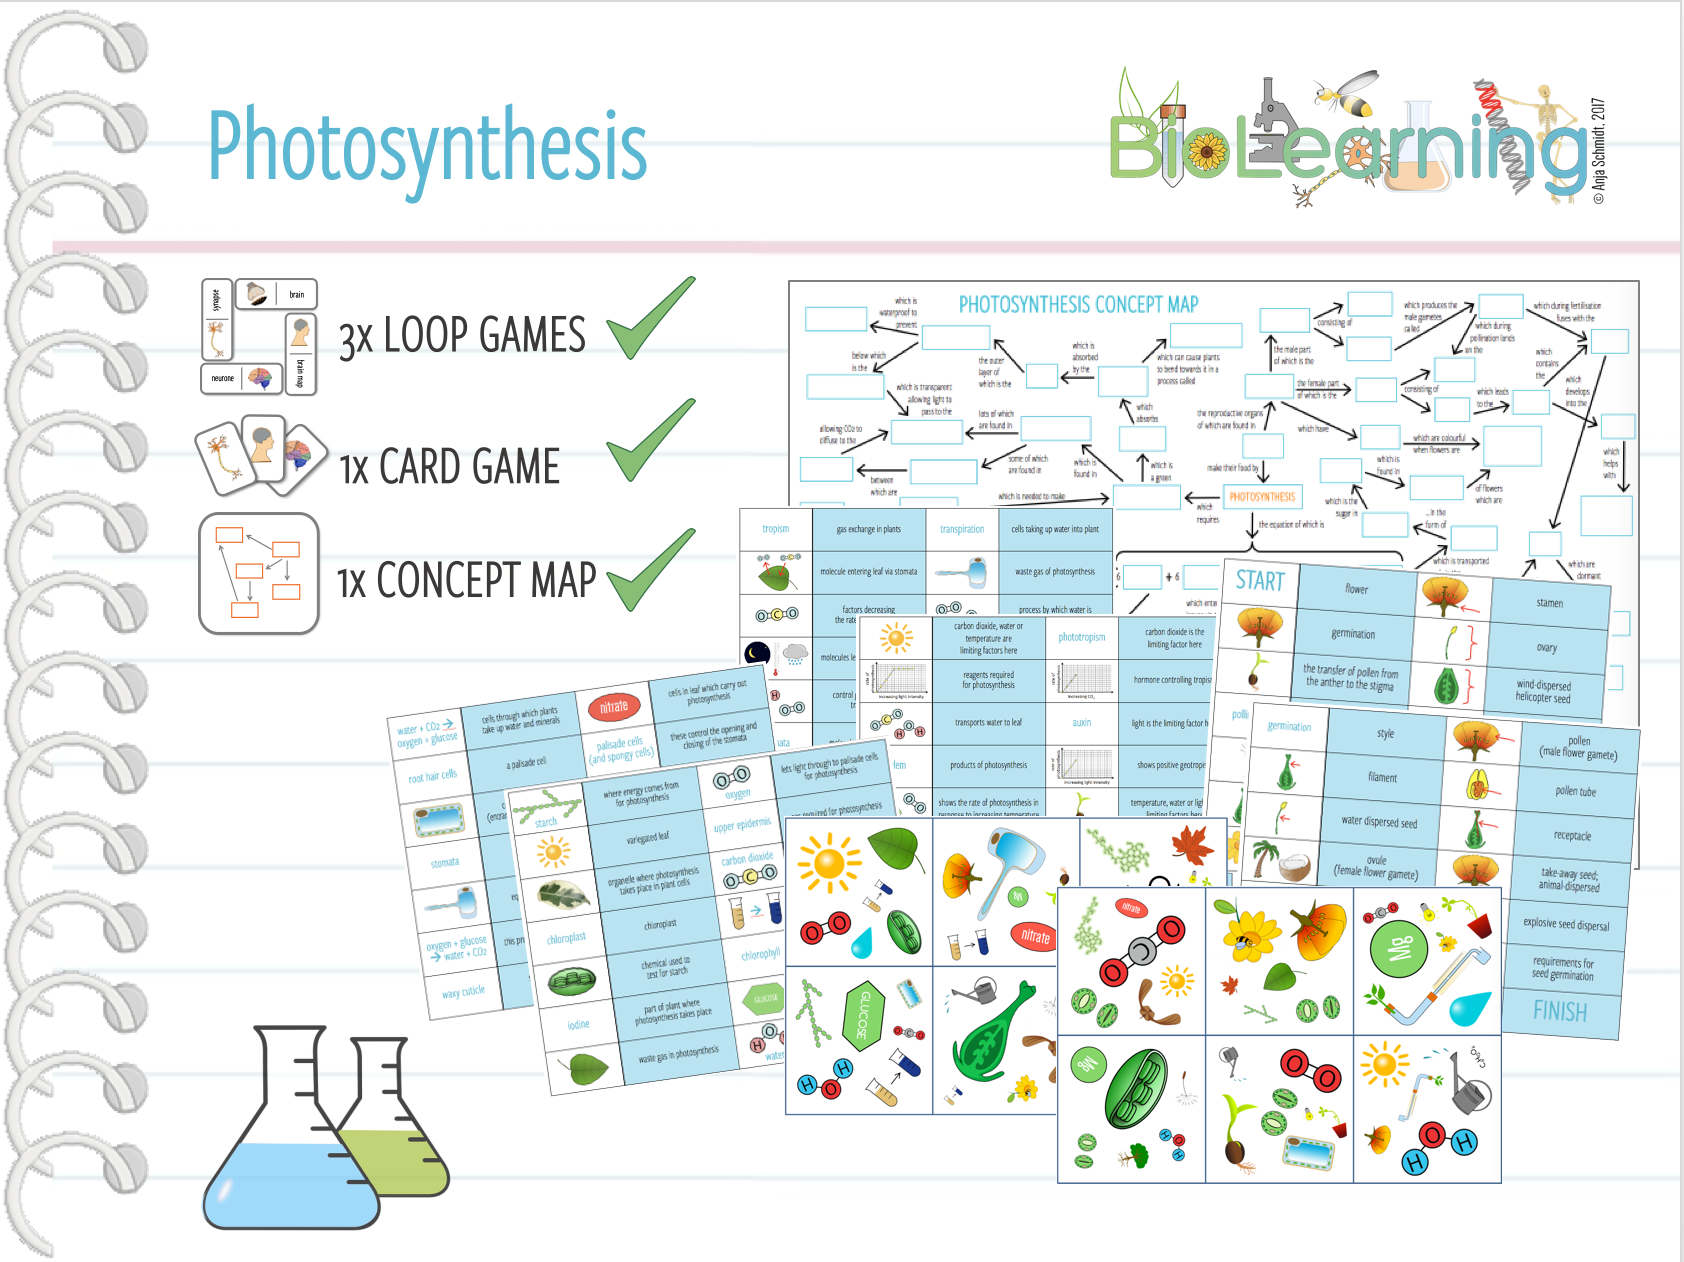 concept map for photosynthesis Photosynthesis concept map prezi, photosynthesis consists of light reactions calvin cycle occurs in chloroplasts consists of grana stroma which are stacks of.